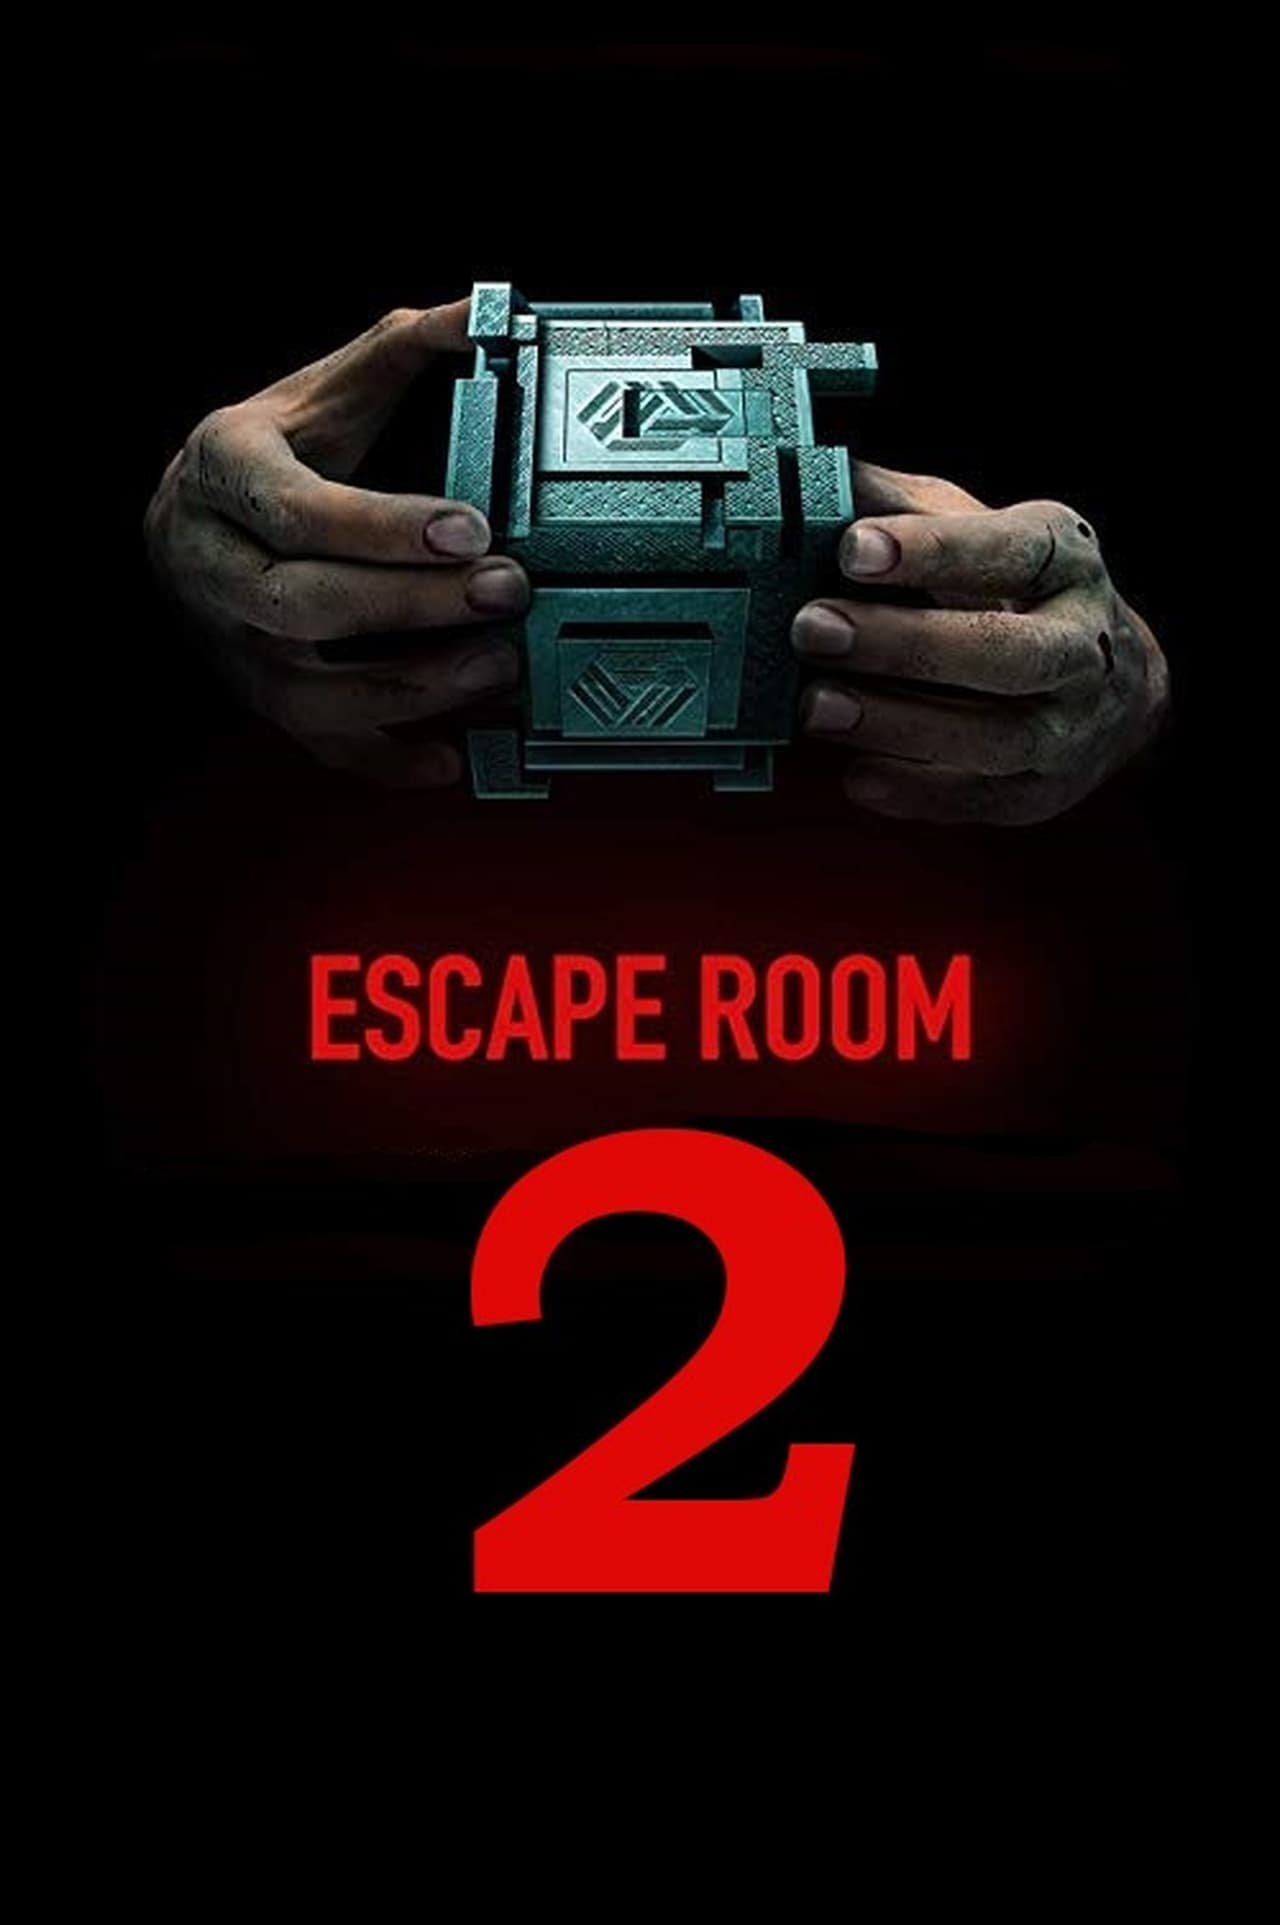 Watch Escape Room 2 (2021) Online Full Movie at streamonline.bestmoviehd.net